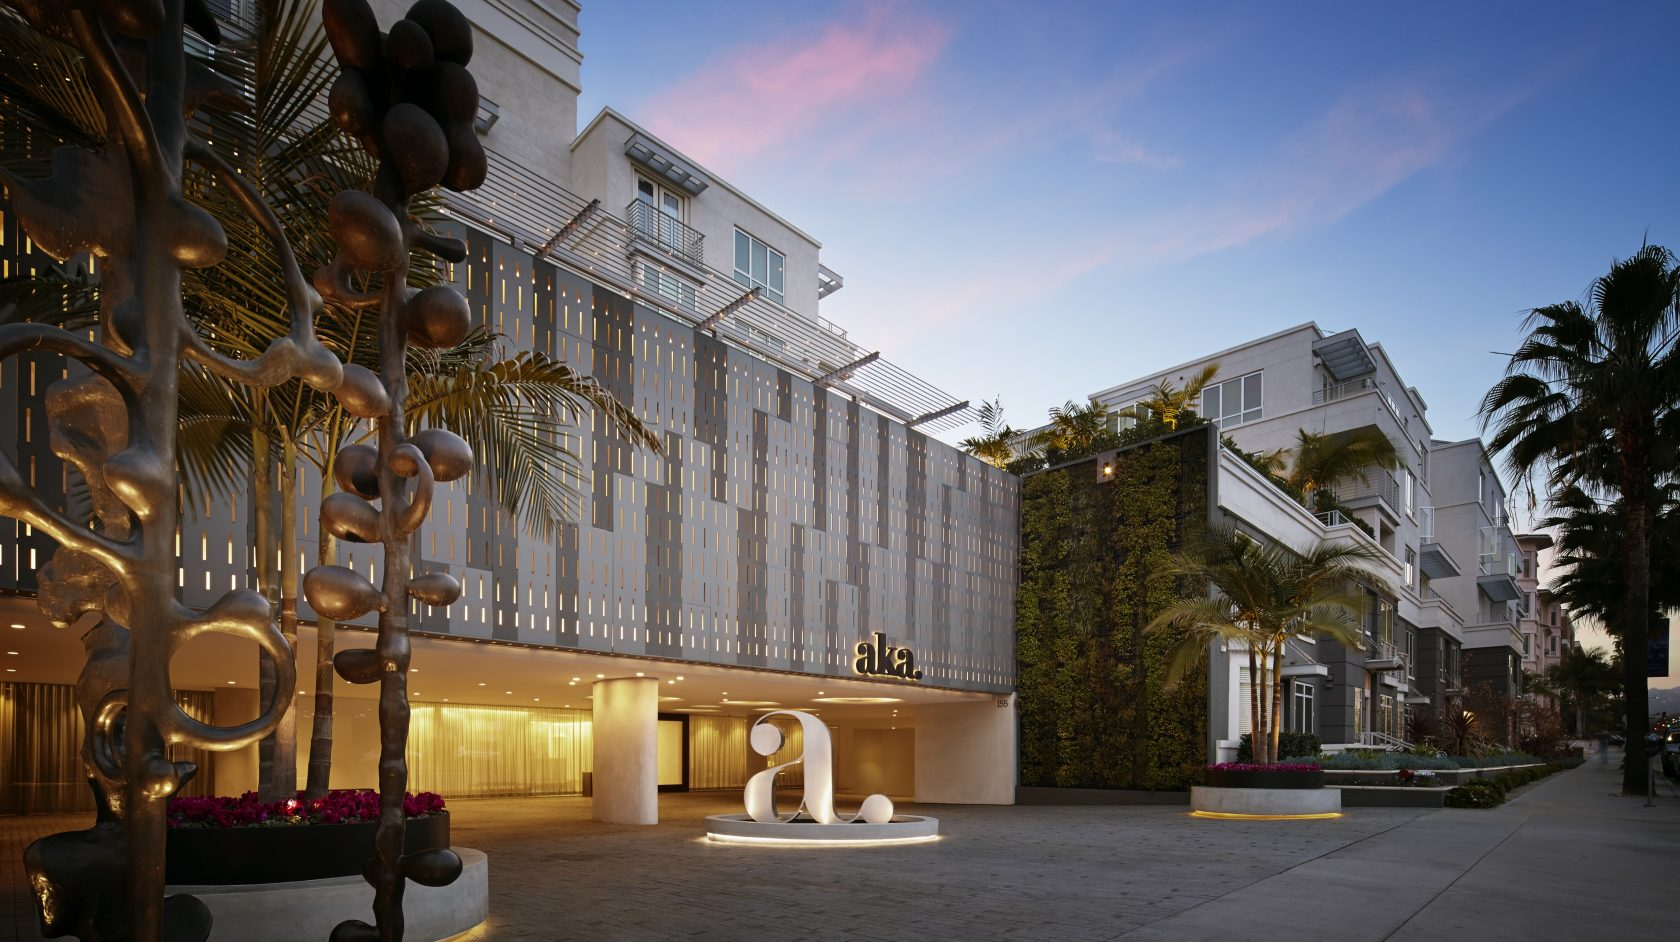 AKA Street Level View of Lobby - Sunset background with Palm Trees